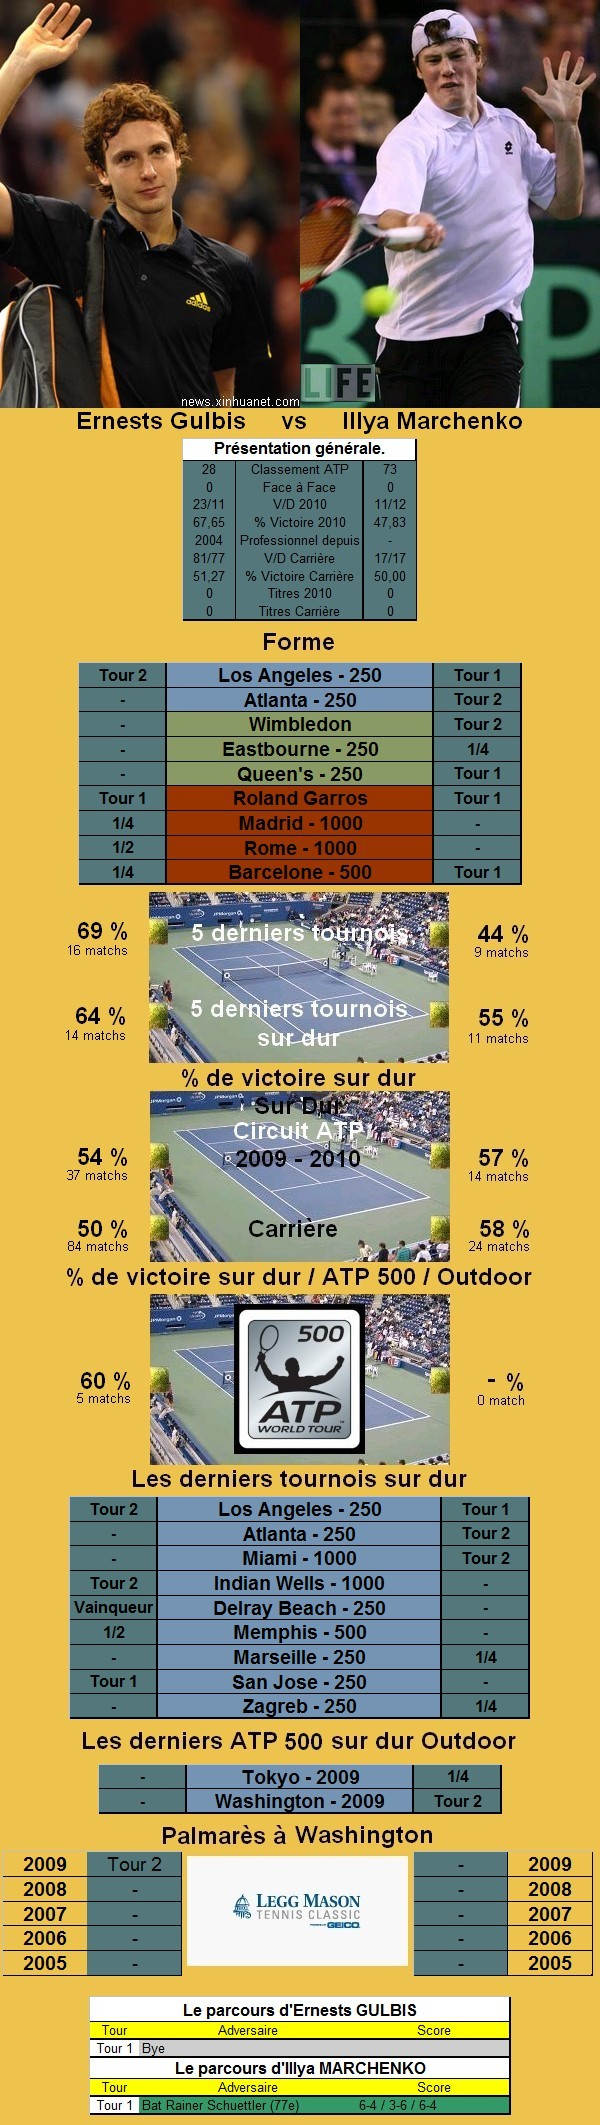 Statistiques tennis de Gulbis contre Marchenko à Washington